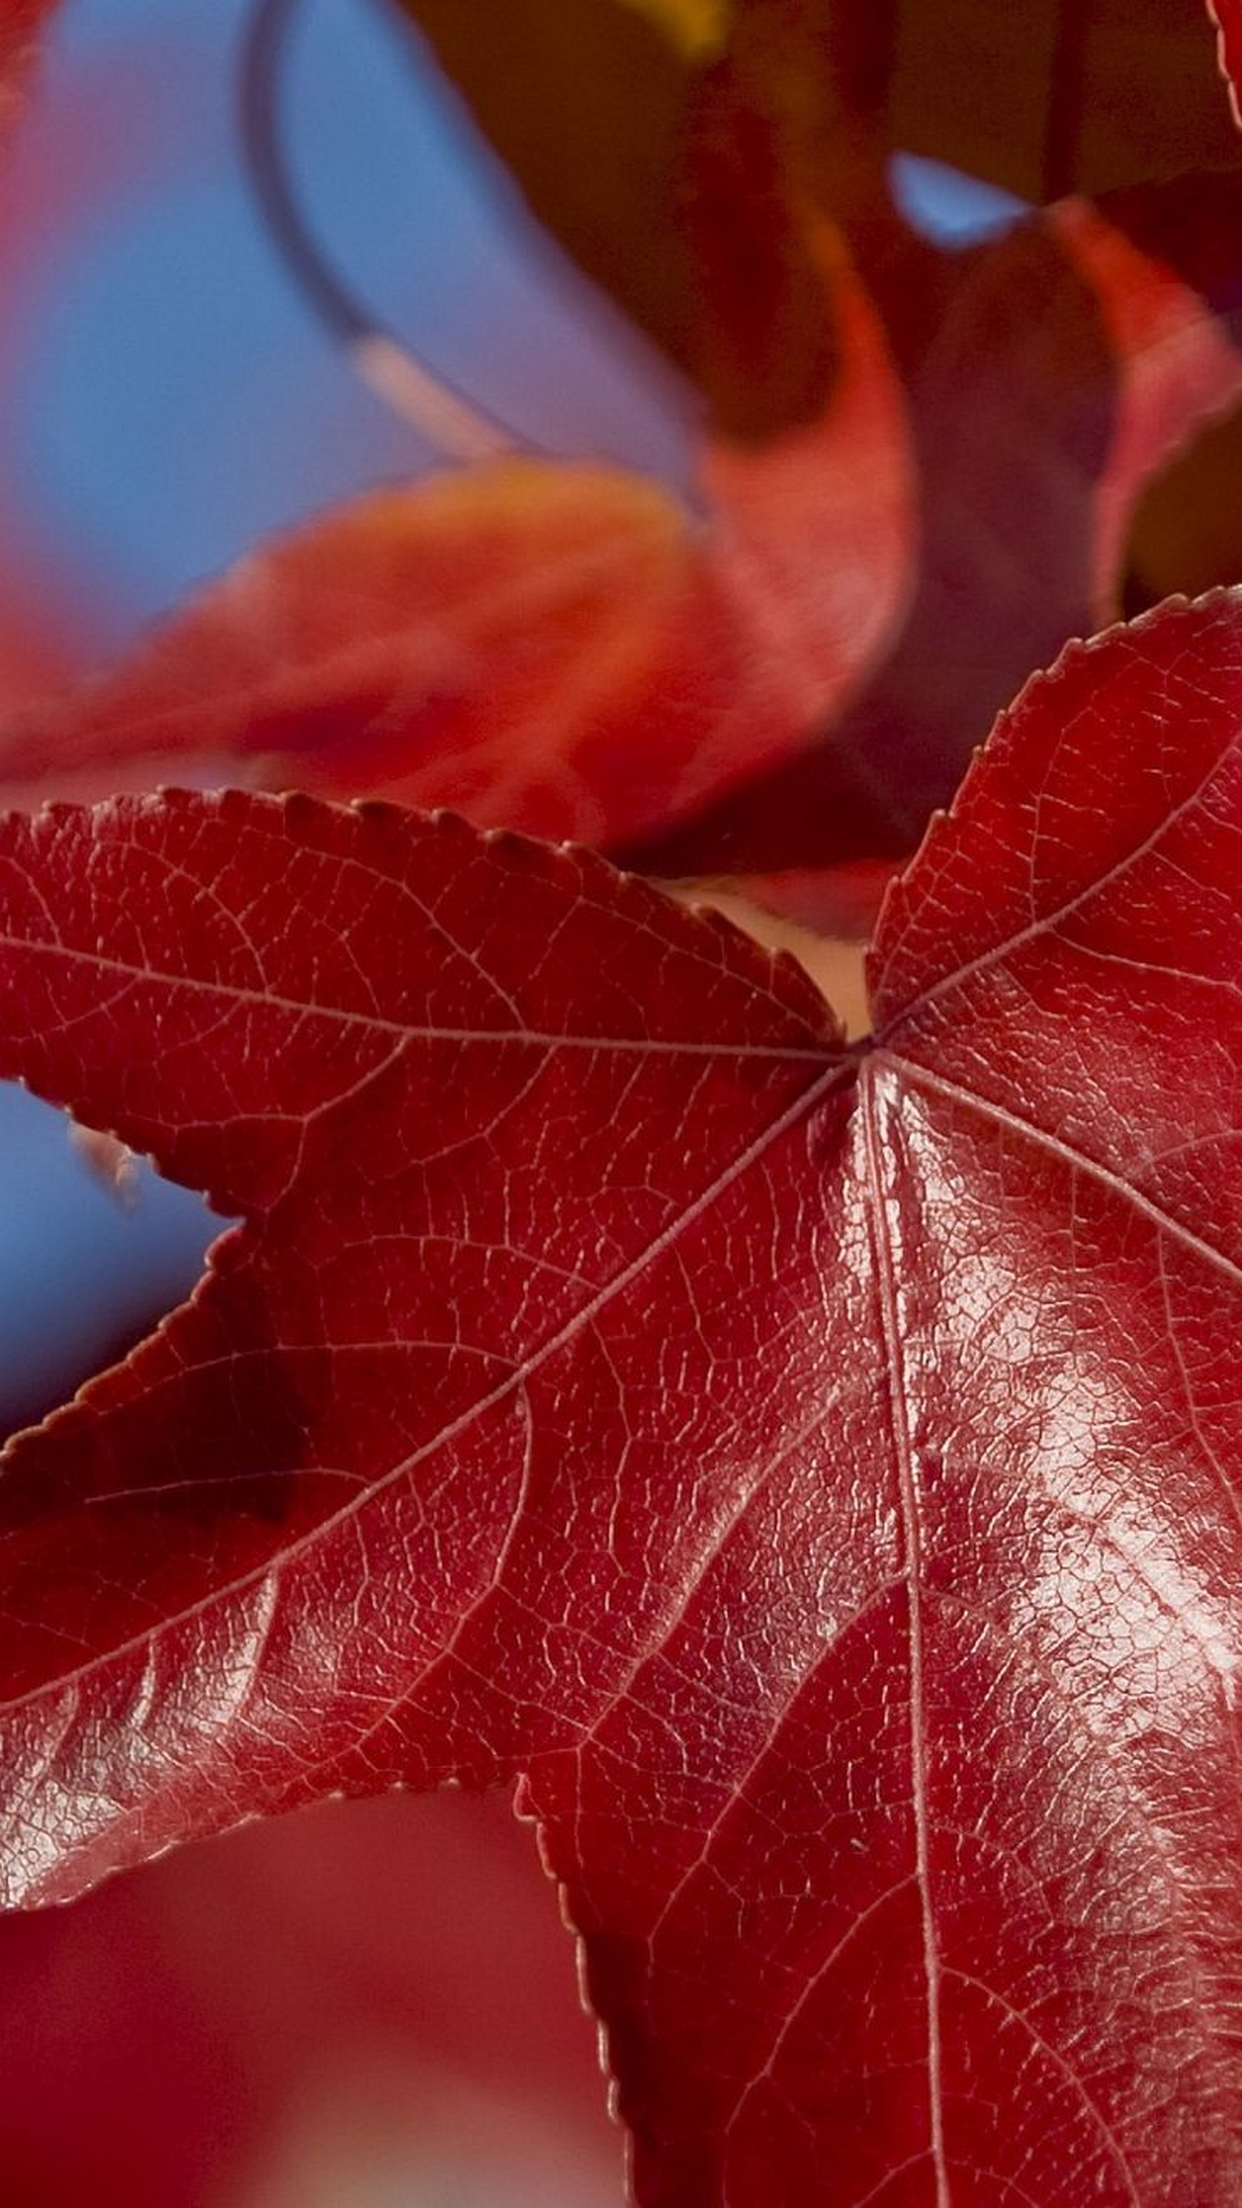 Wallpaper For Iphone Iphone 6 Wallpaper Fall Leaves Red